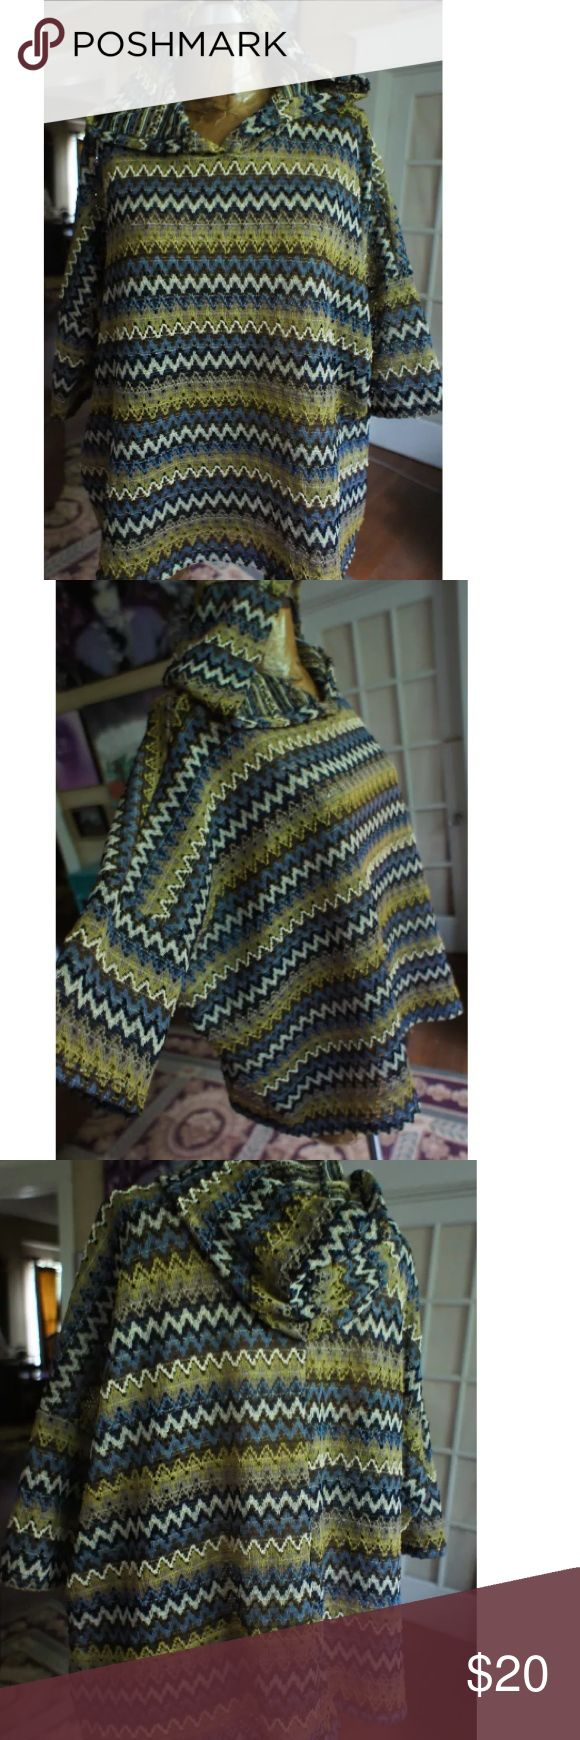 Boho chevron knit poncho hoodie XL Cute earthy festival poncho hoodie cute open knit with earthy colors boutique no tag  size XL boutique Tops Sweatshirts & Hoodies